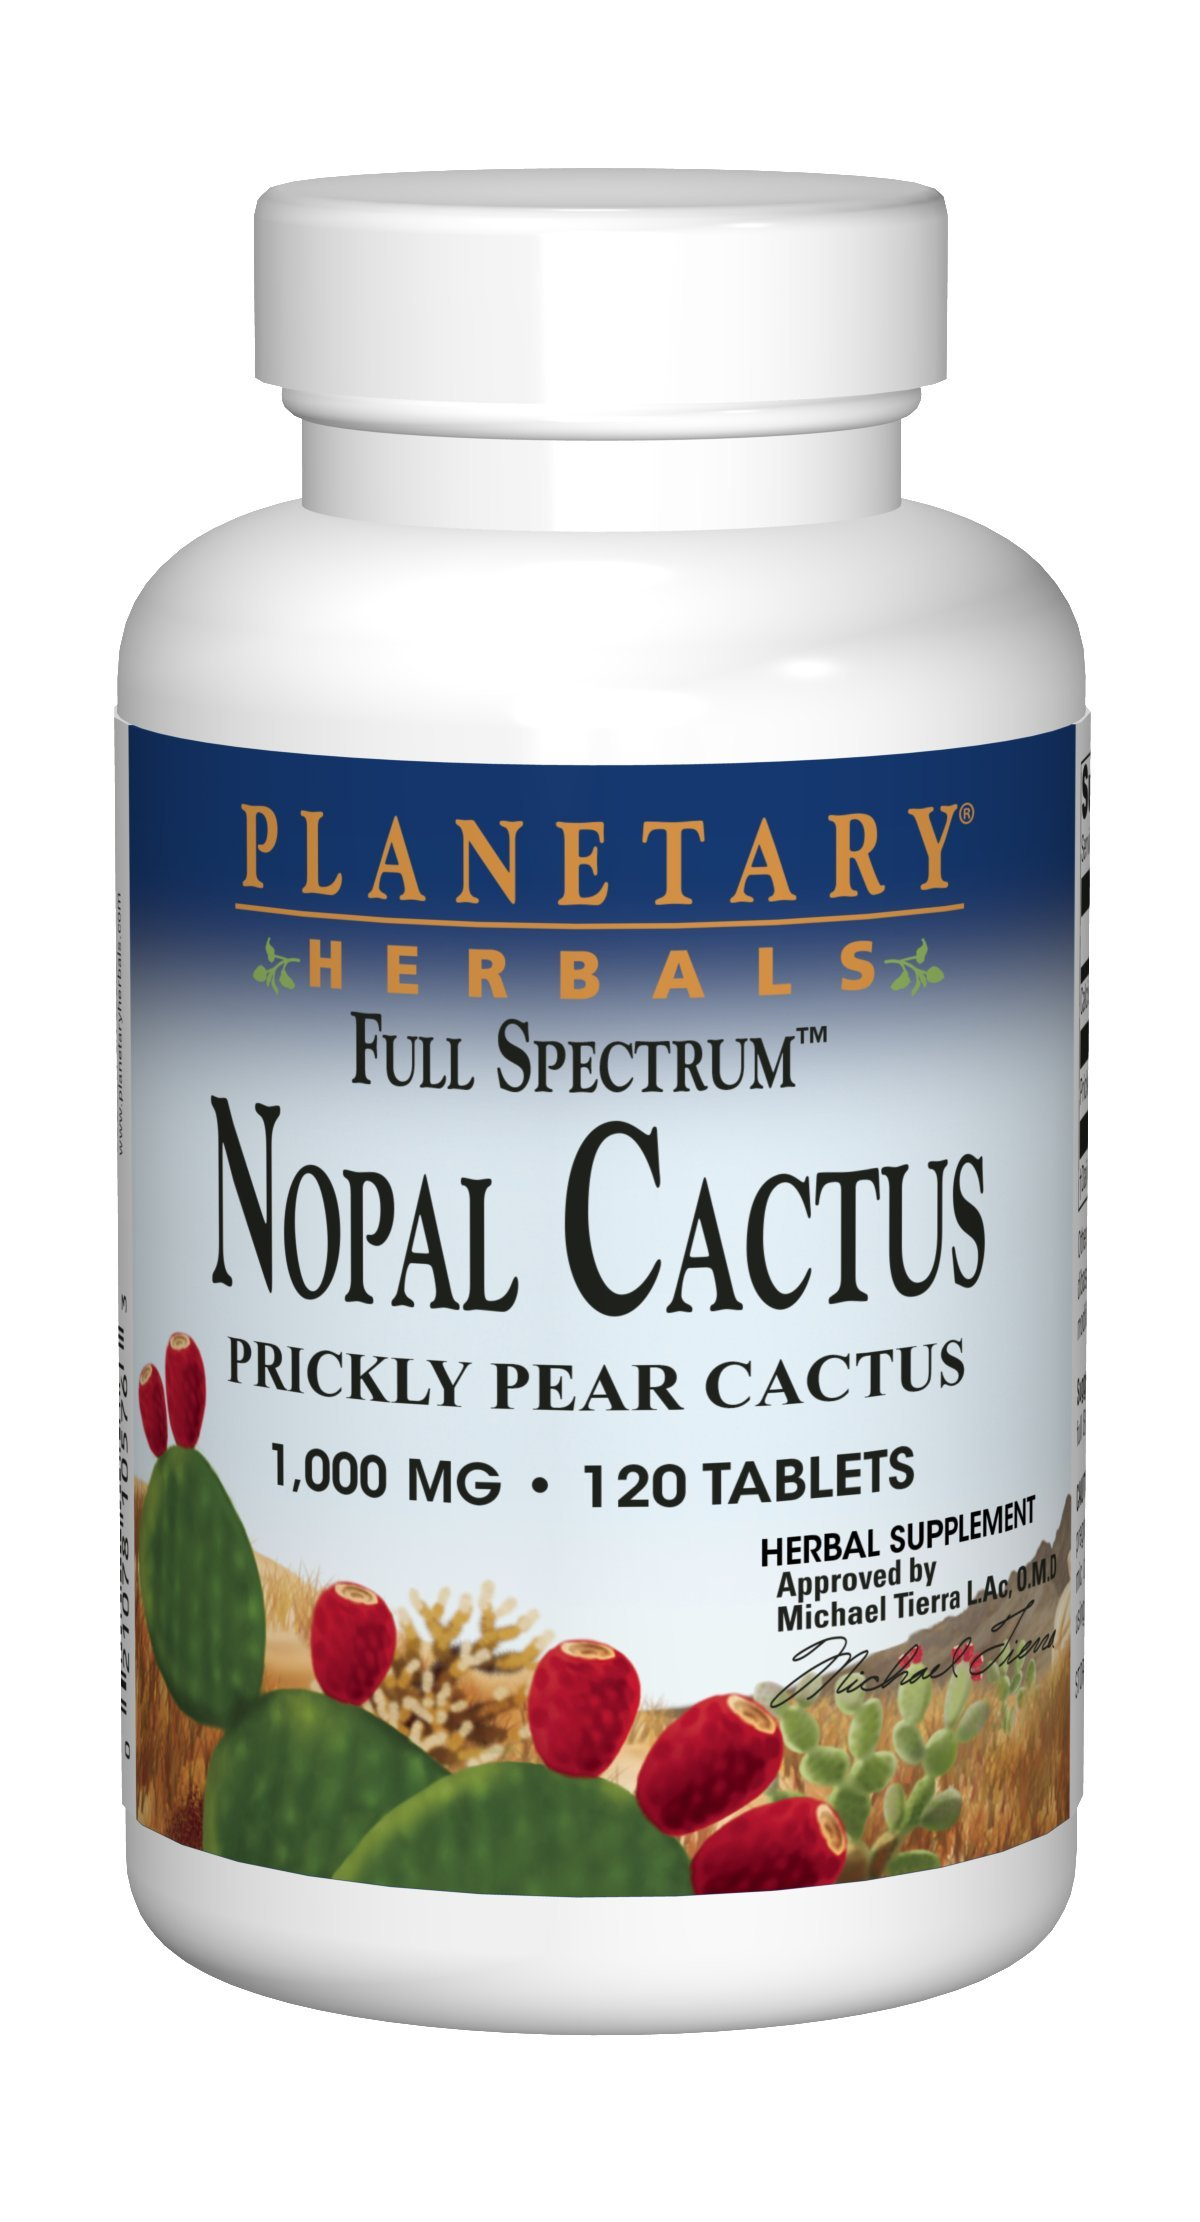 Planetary Herbals Full Spectrum Nopal Cactus 1000 mg 120 Tablets